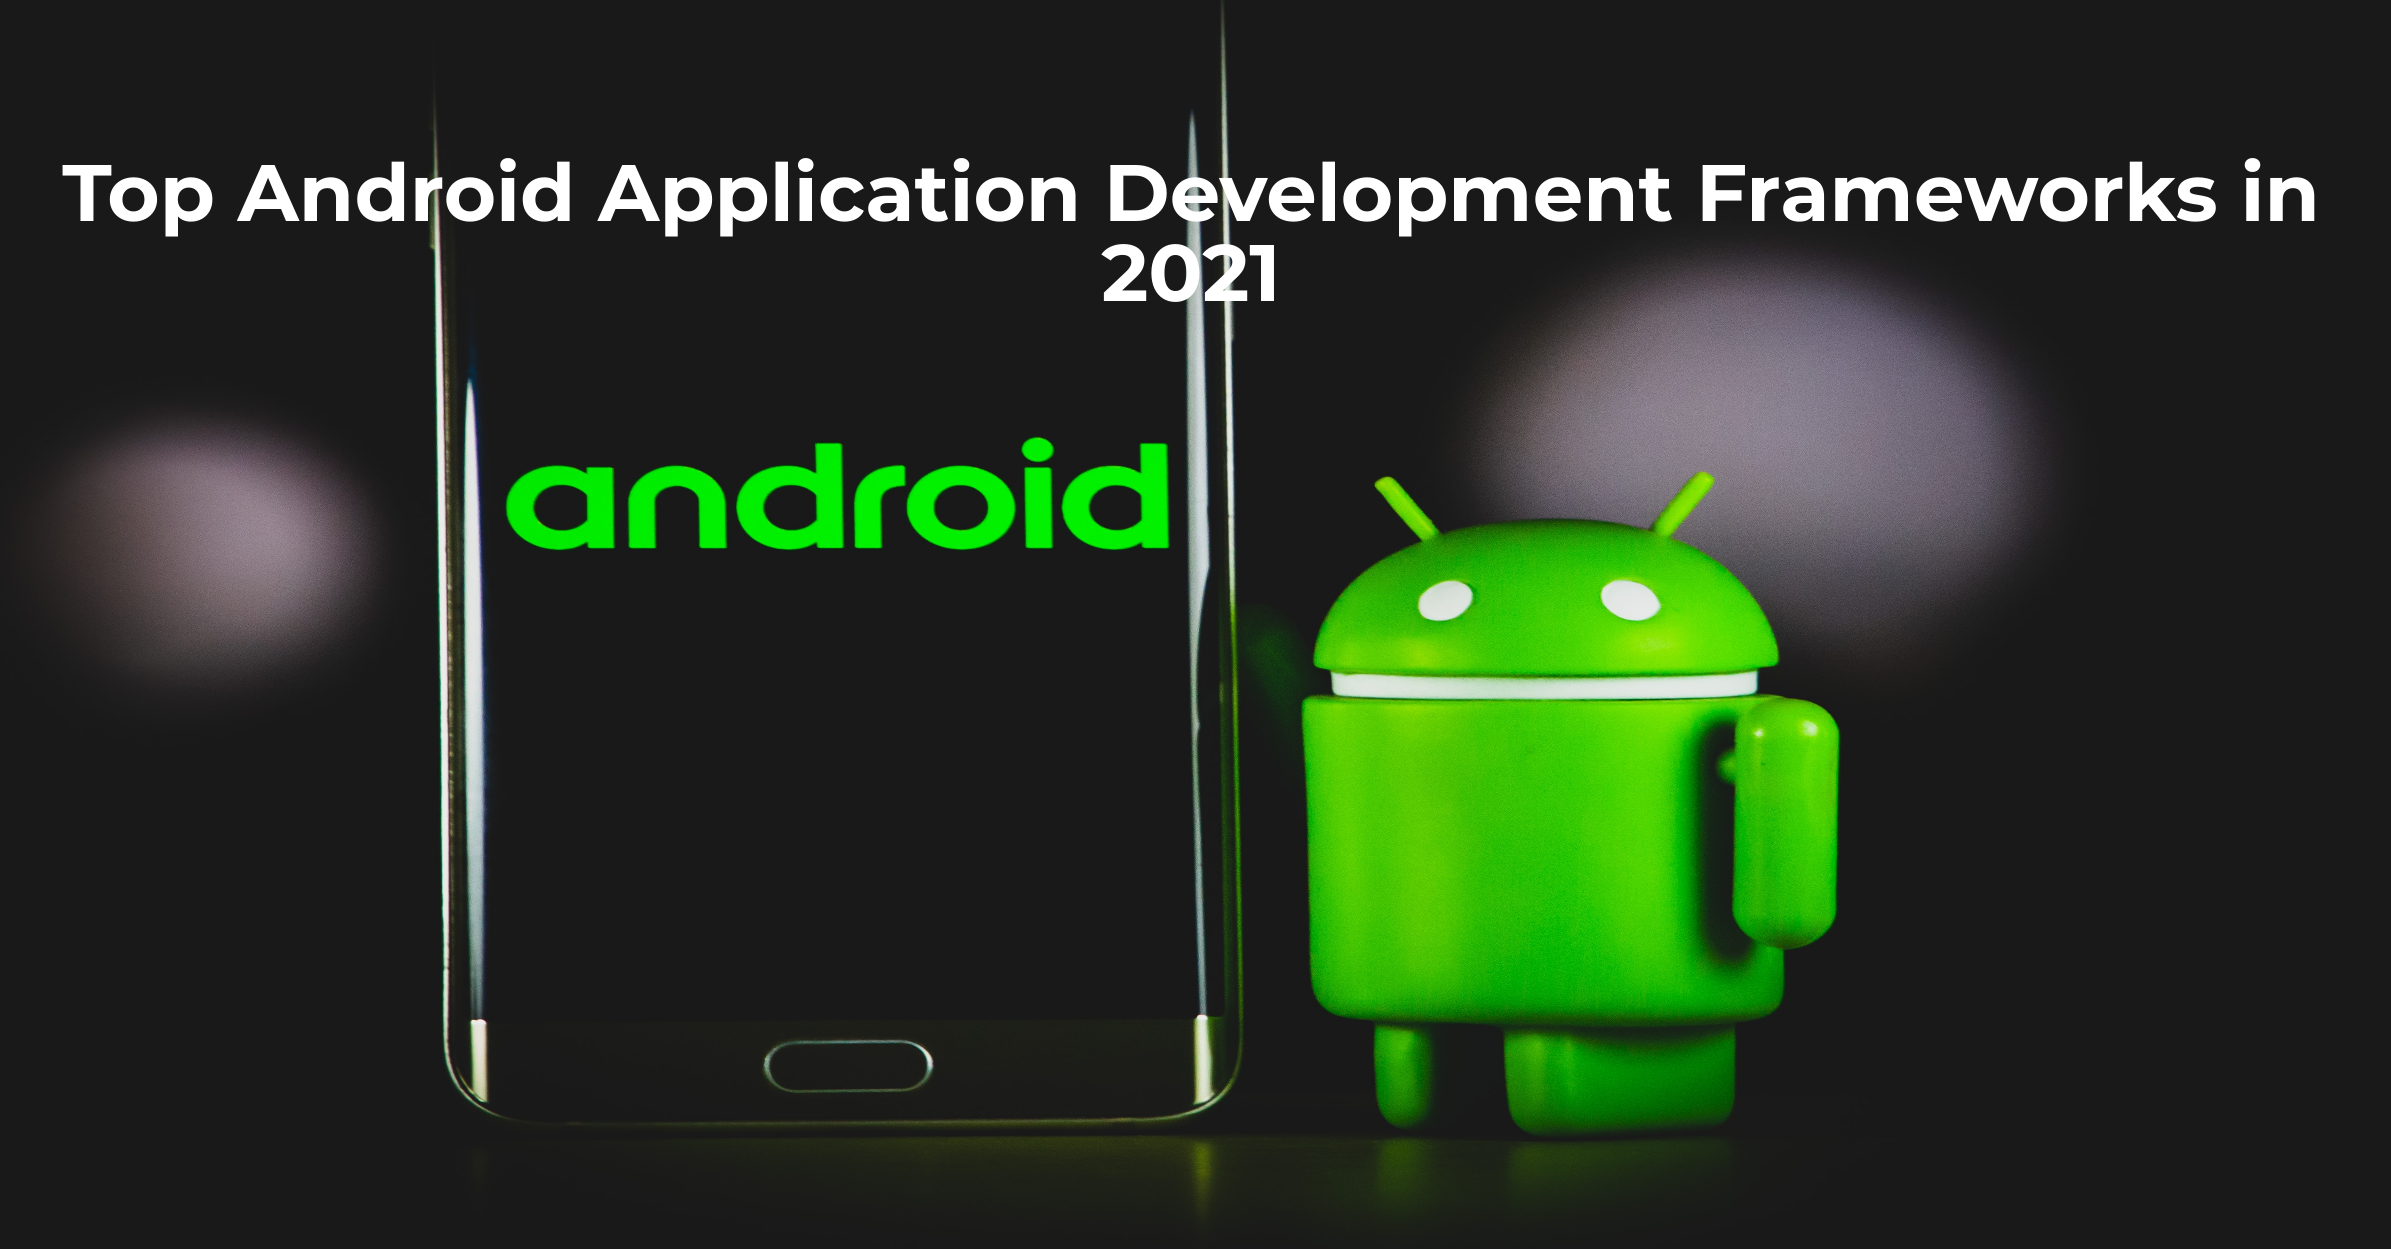 Top Android Application Development Frameworks in 2021